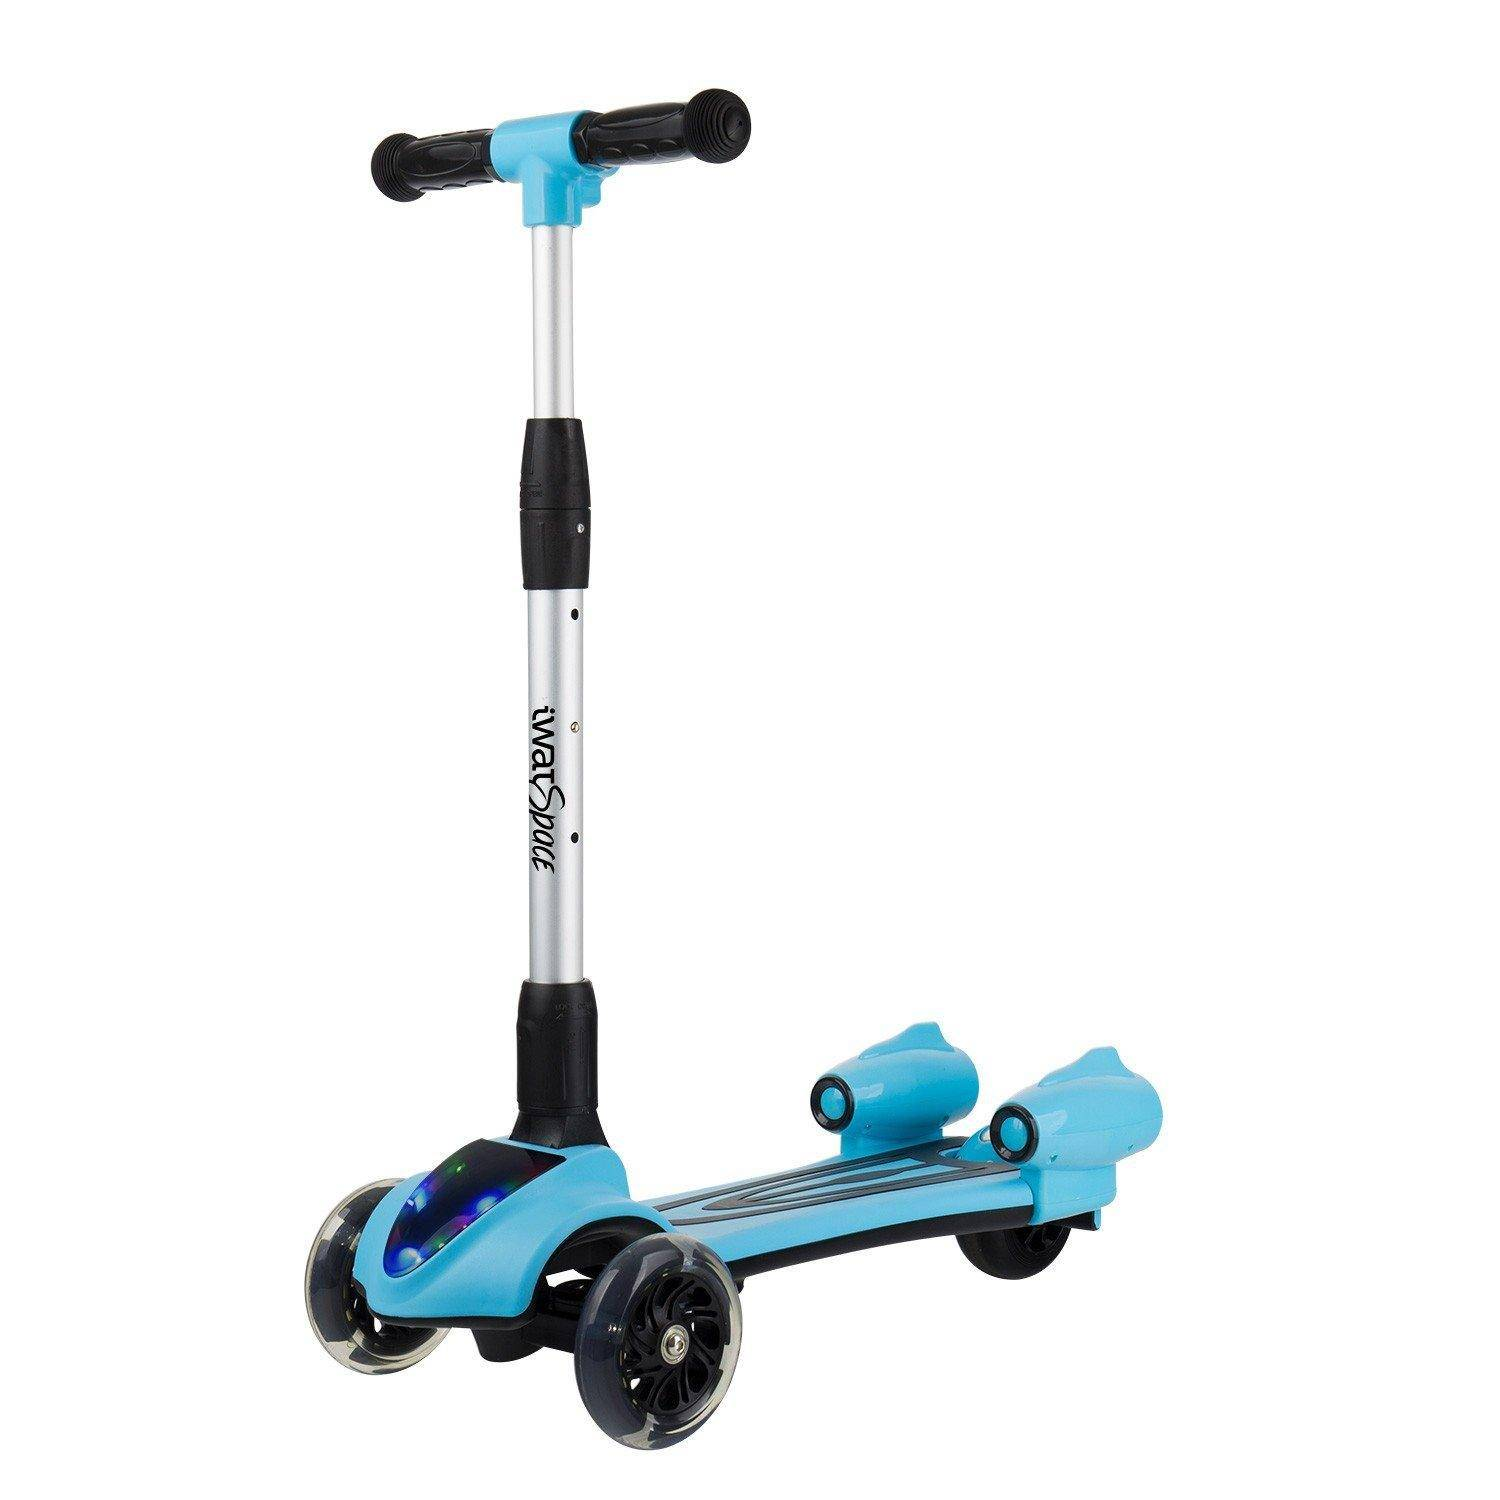 IWat Motion Patinete infantil con led iWatSpace Neptune iWat Motion